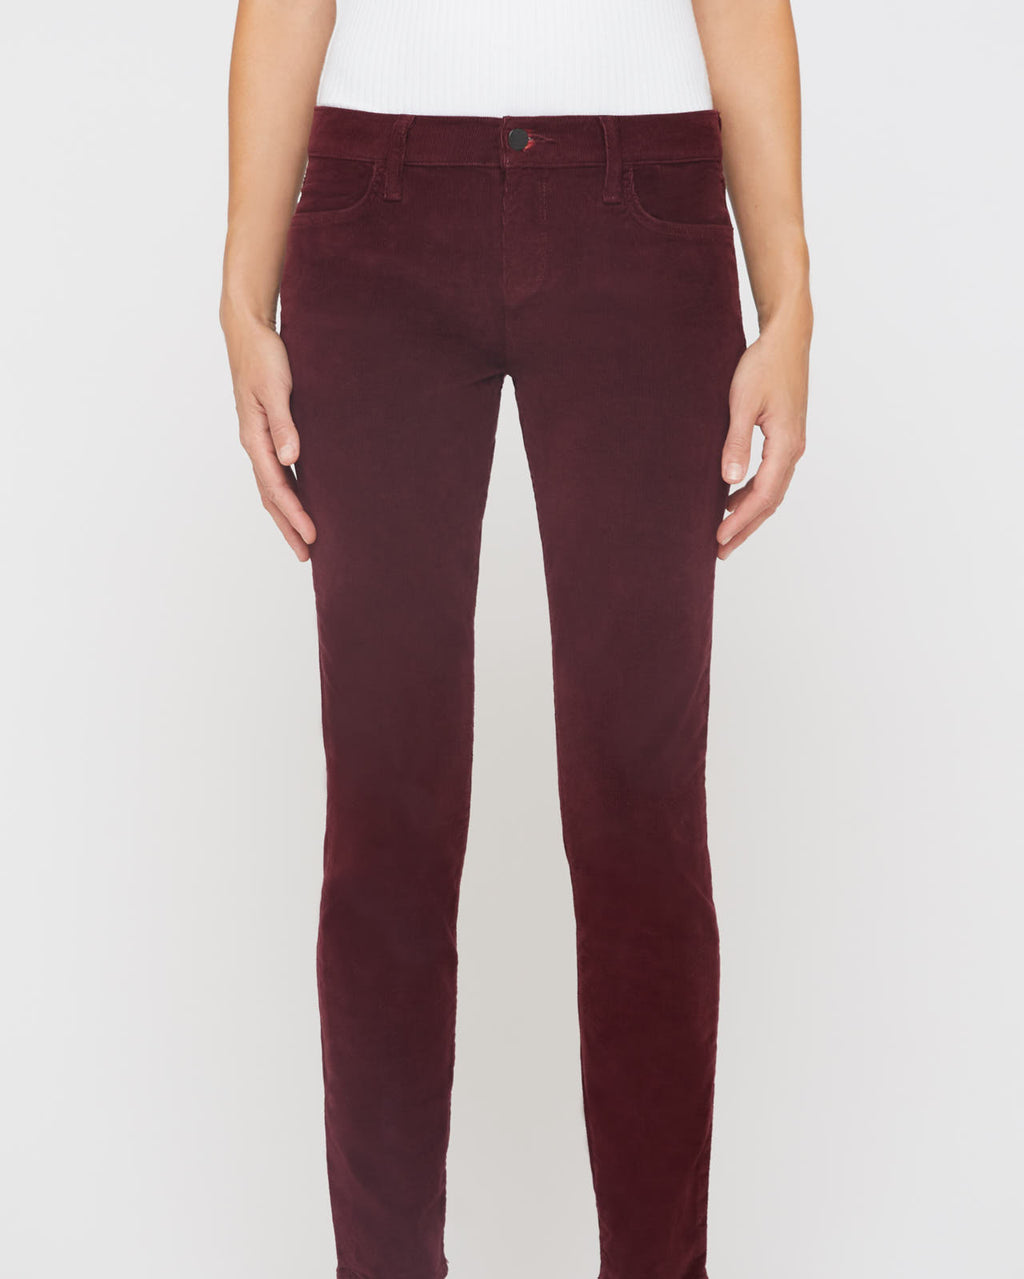 The Sophia Jean in Mulberry Corduroy